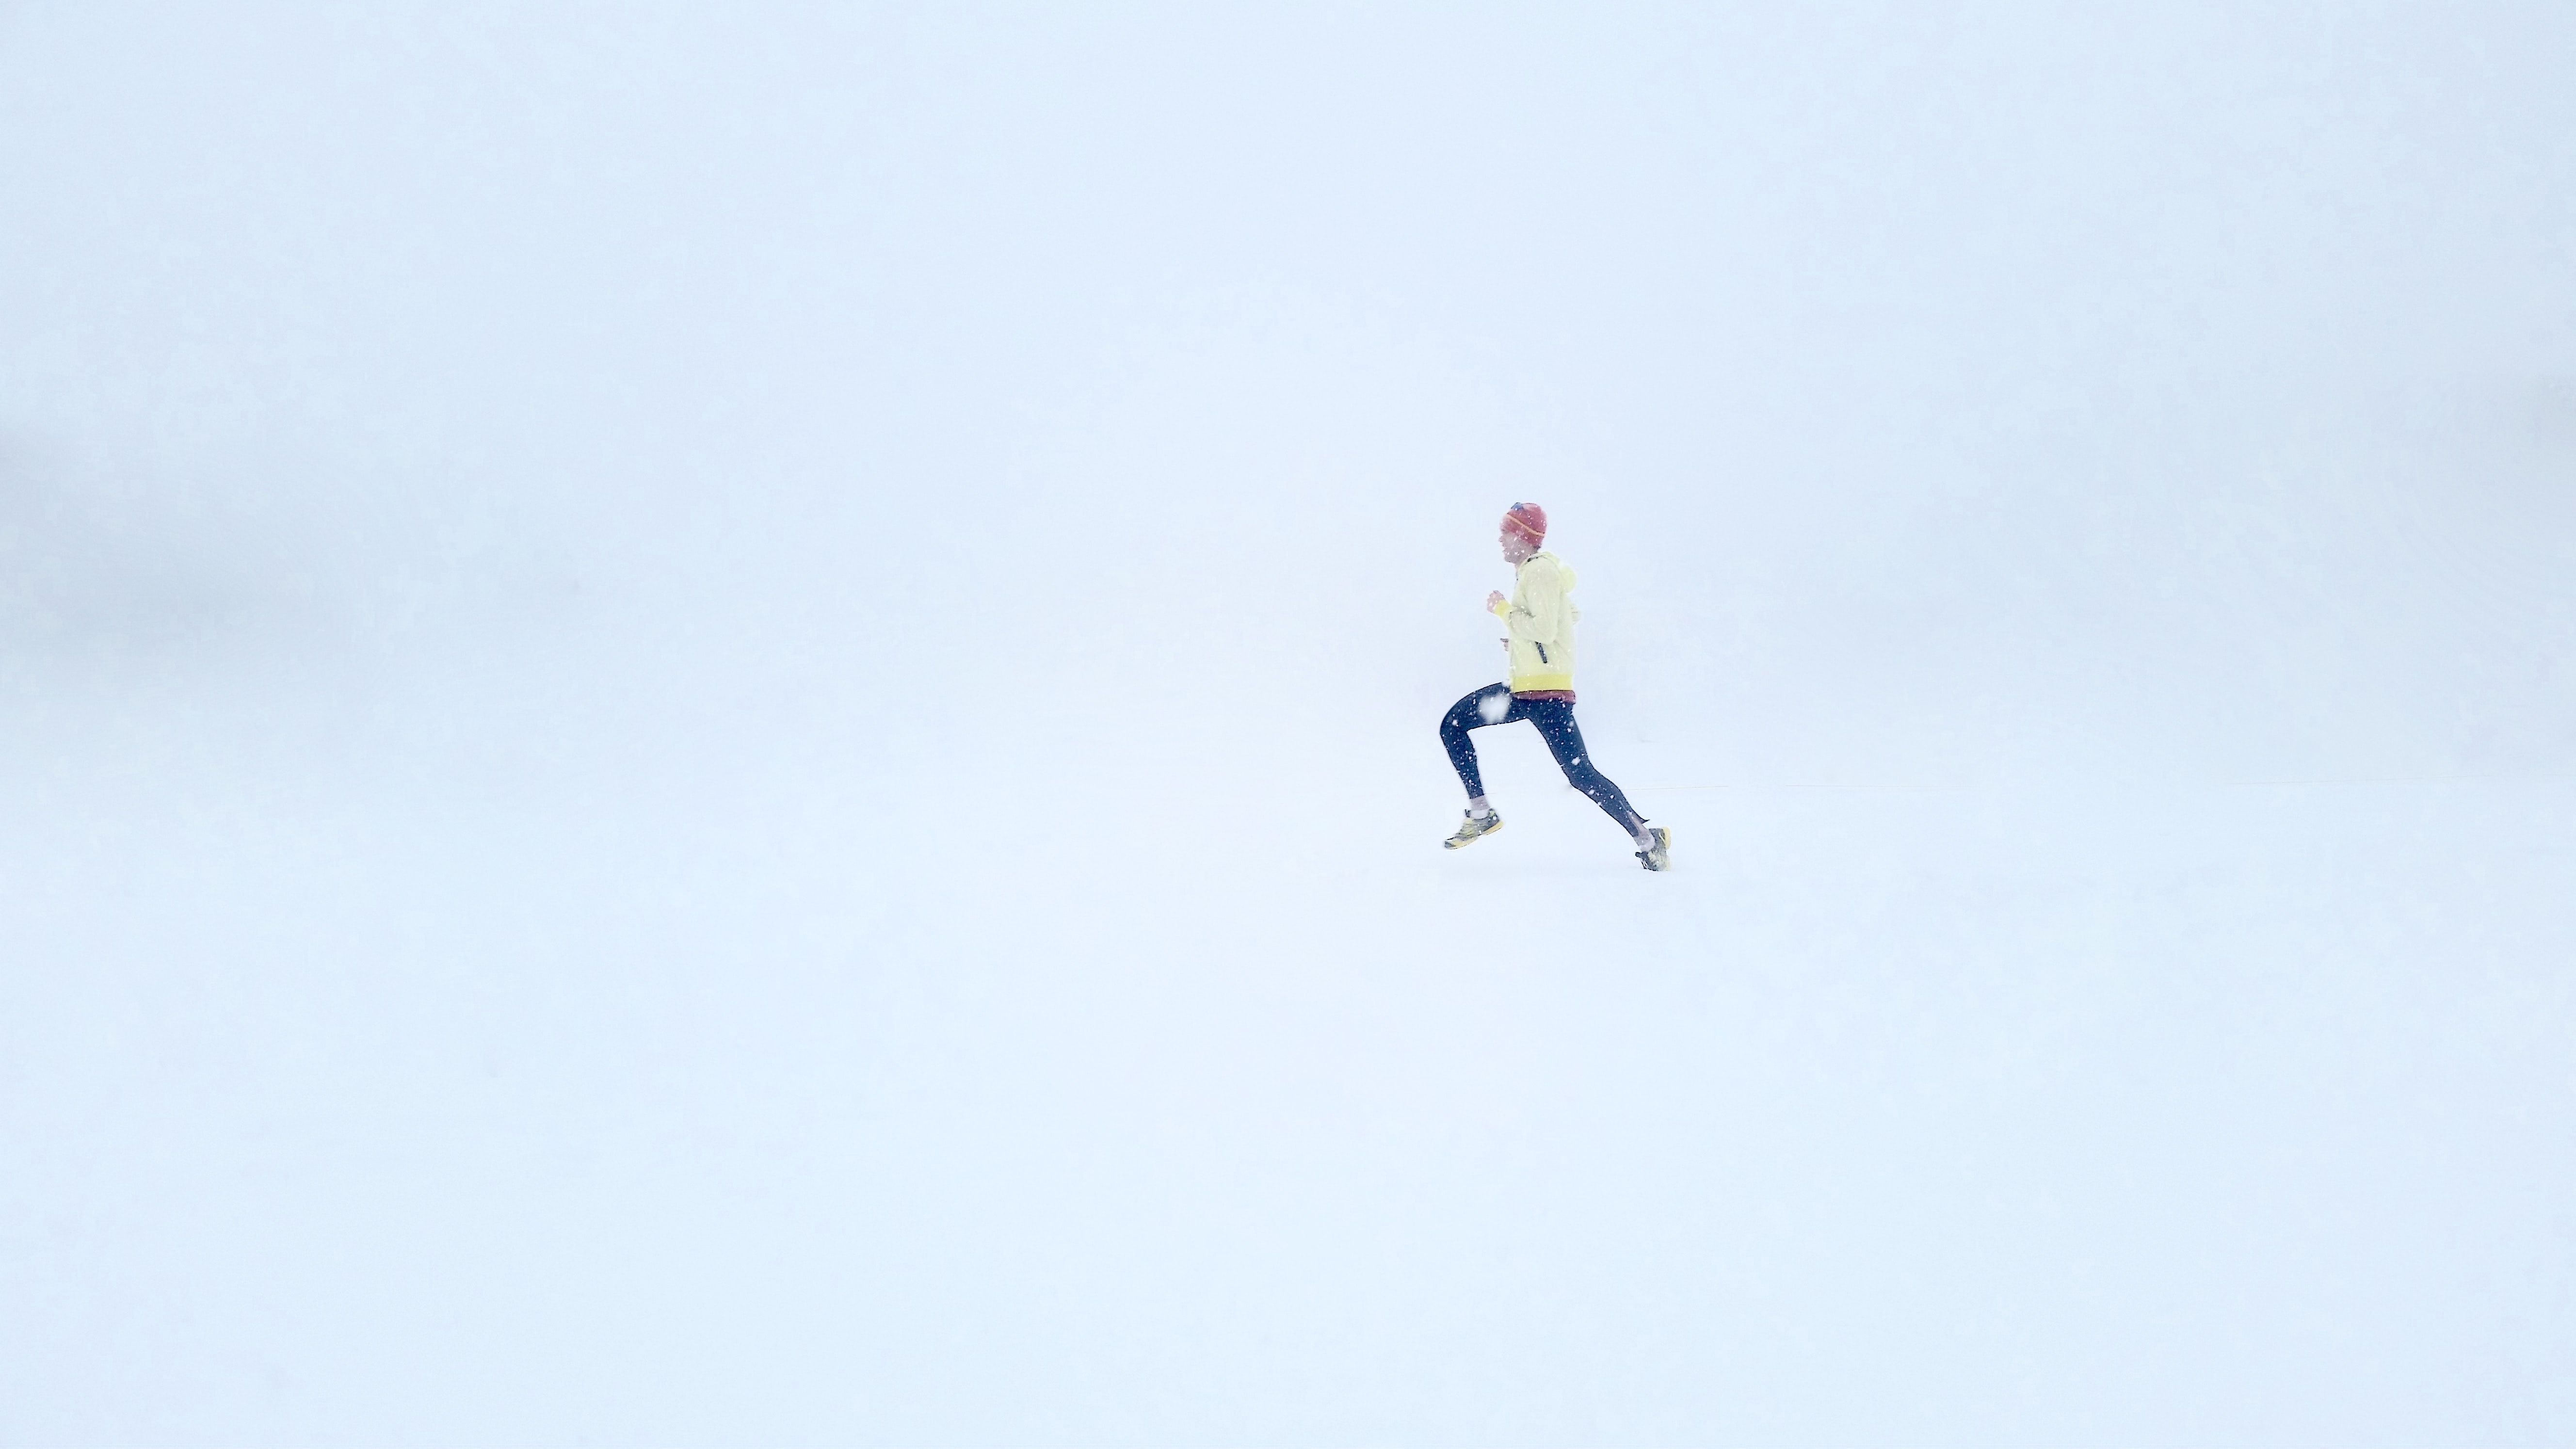 A person running in the snow during a whiteout